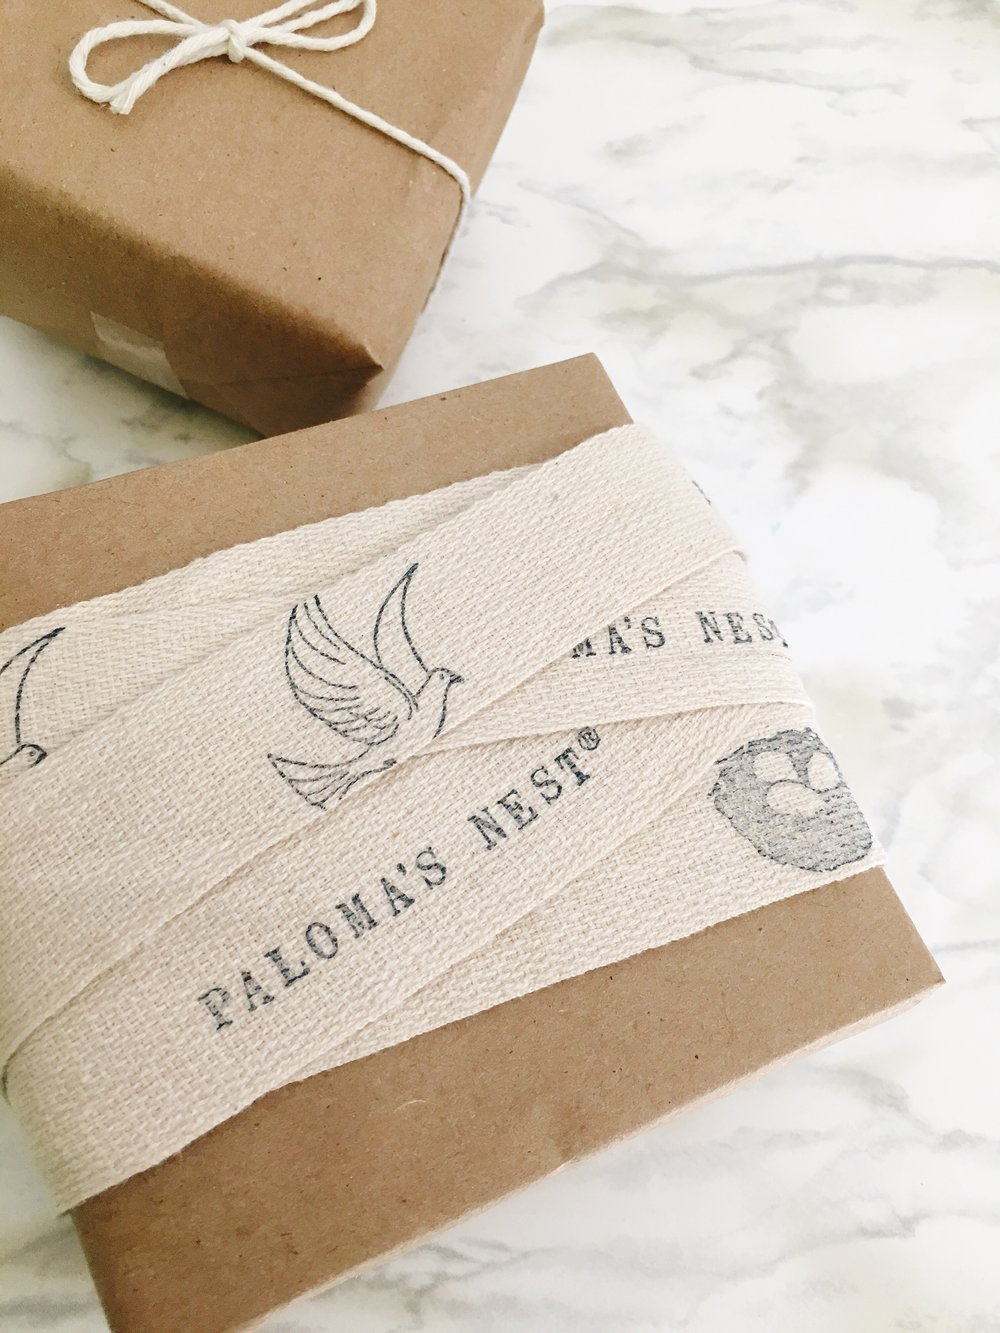 Creatiate Rubber Stamps Pretty Packaging Project 22.jpg